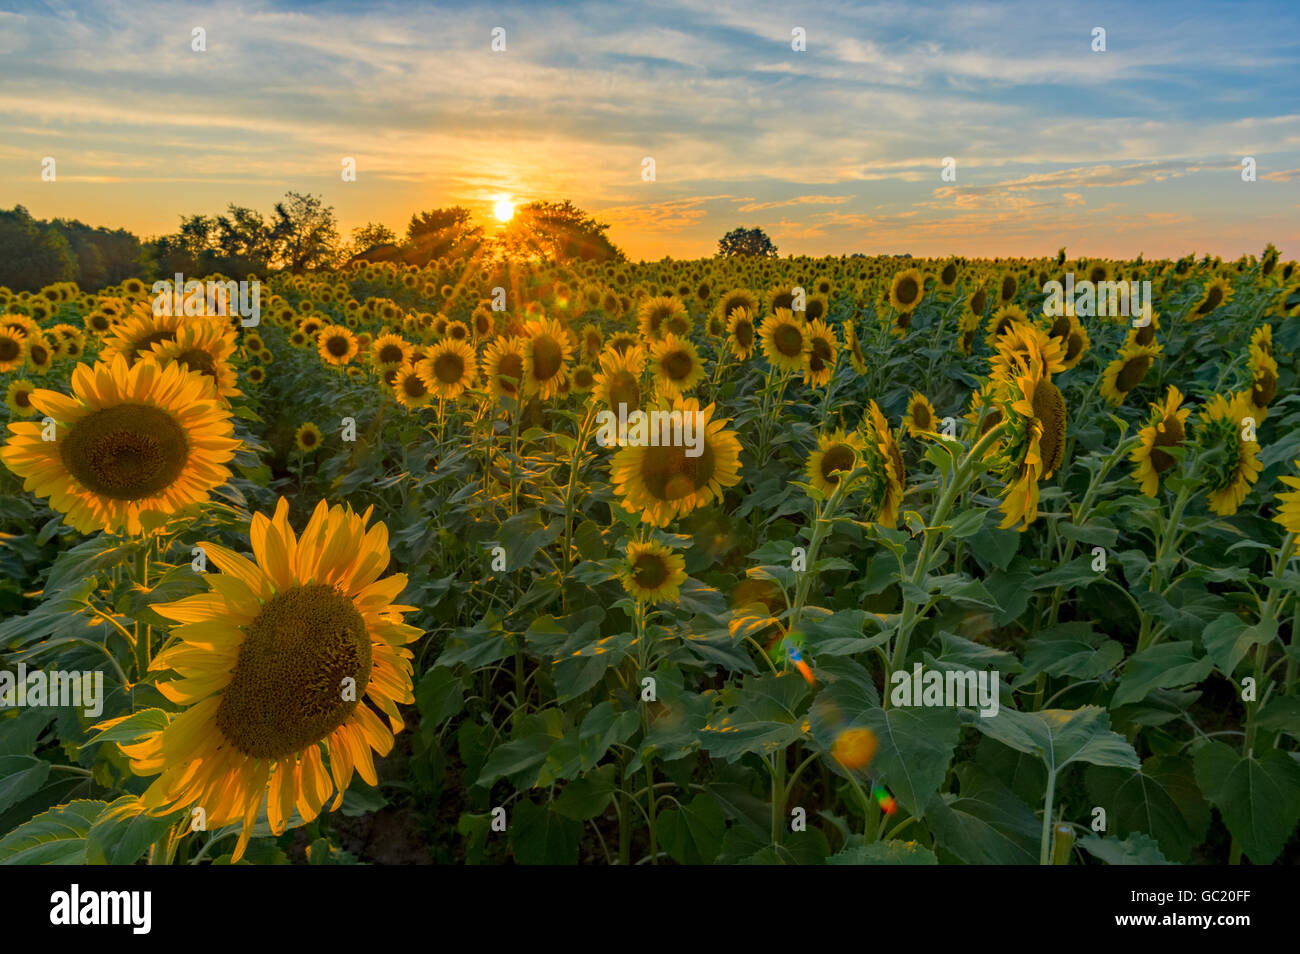 Sunset over a field of sunflowers - Stock Image